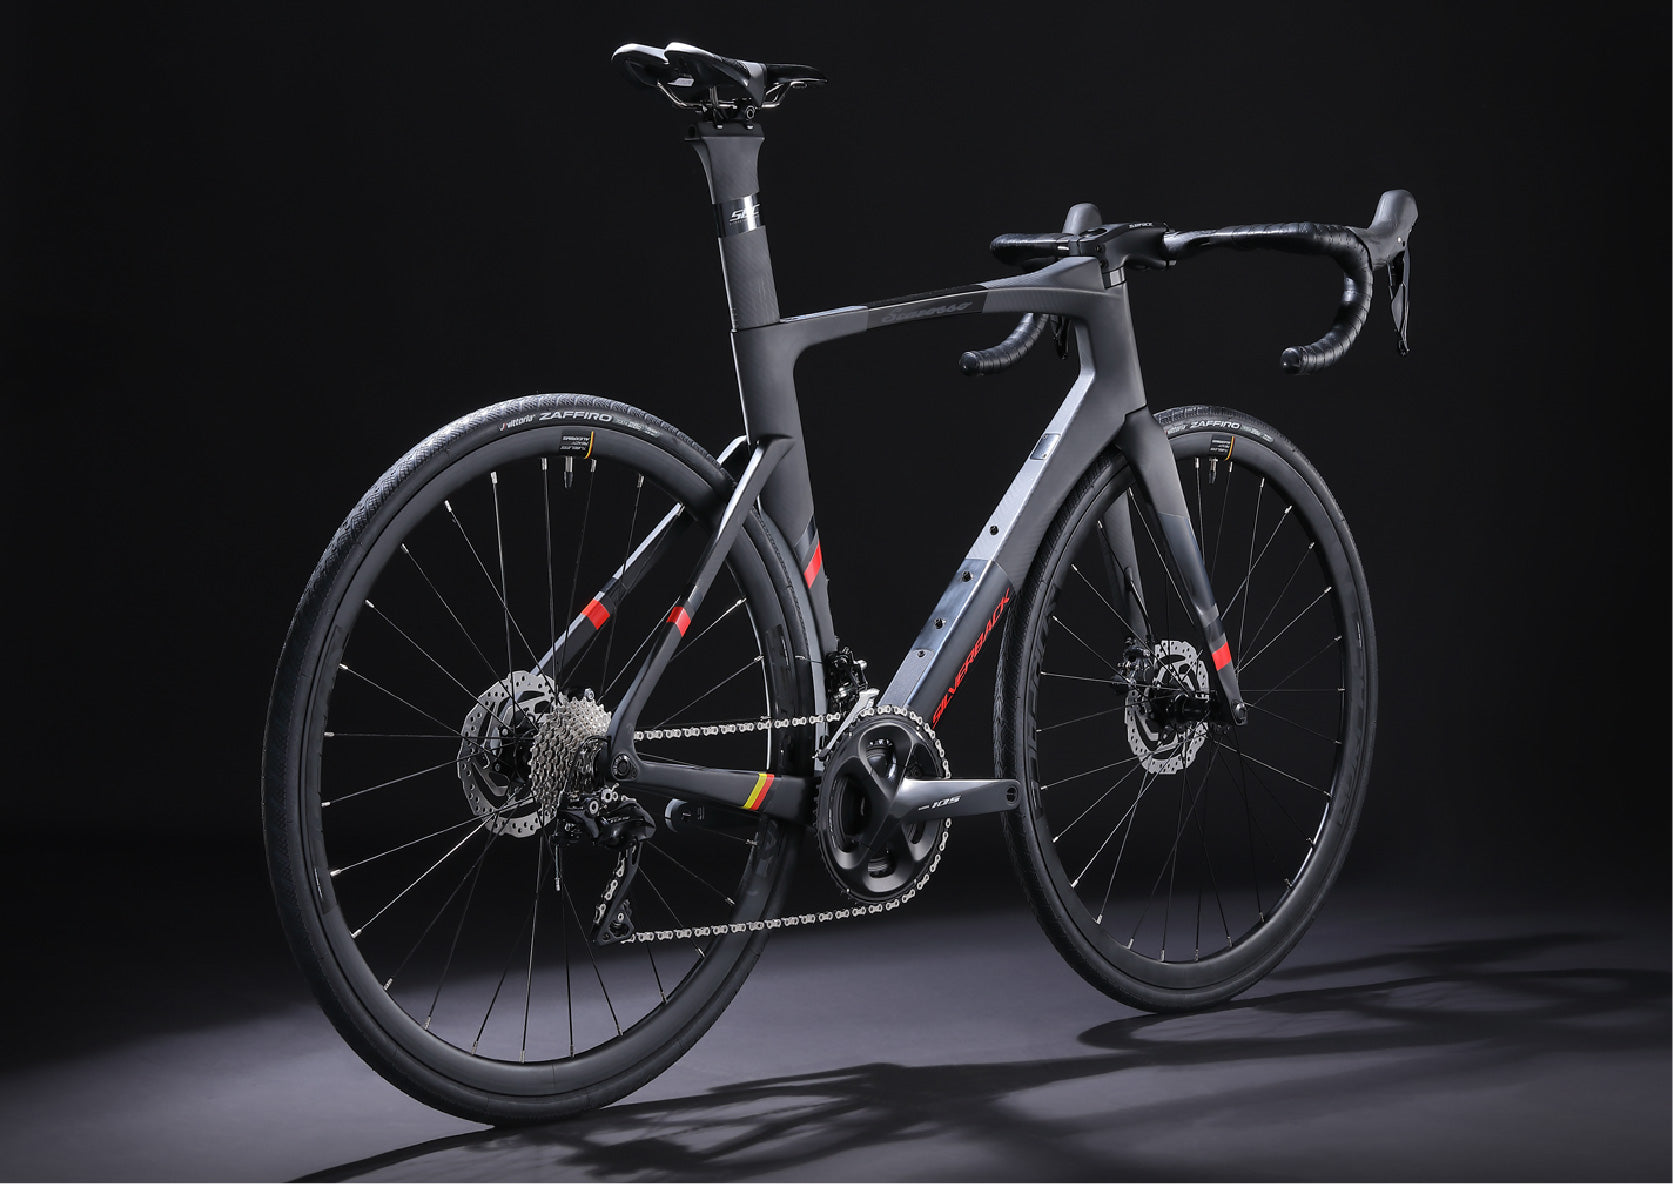 https://cdn.shopify.com/s/files/1/0082/4128/3143/files/Engineering_notes_scarosso_frame_page-UCI.jpg?v=1598532250